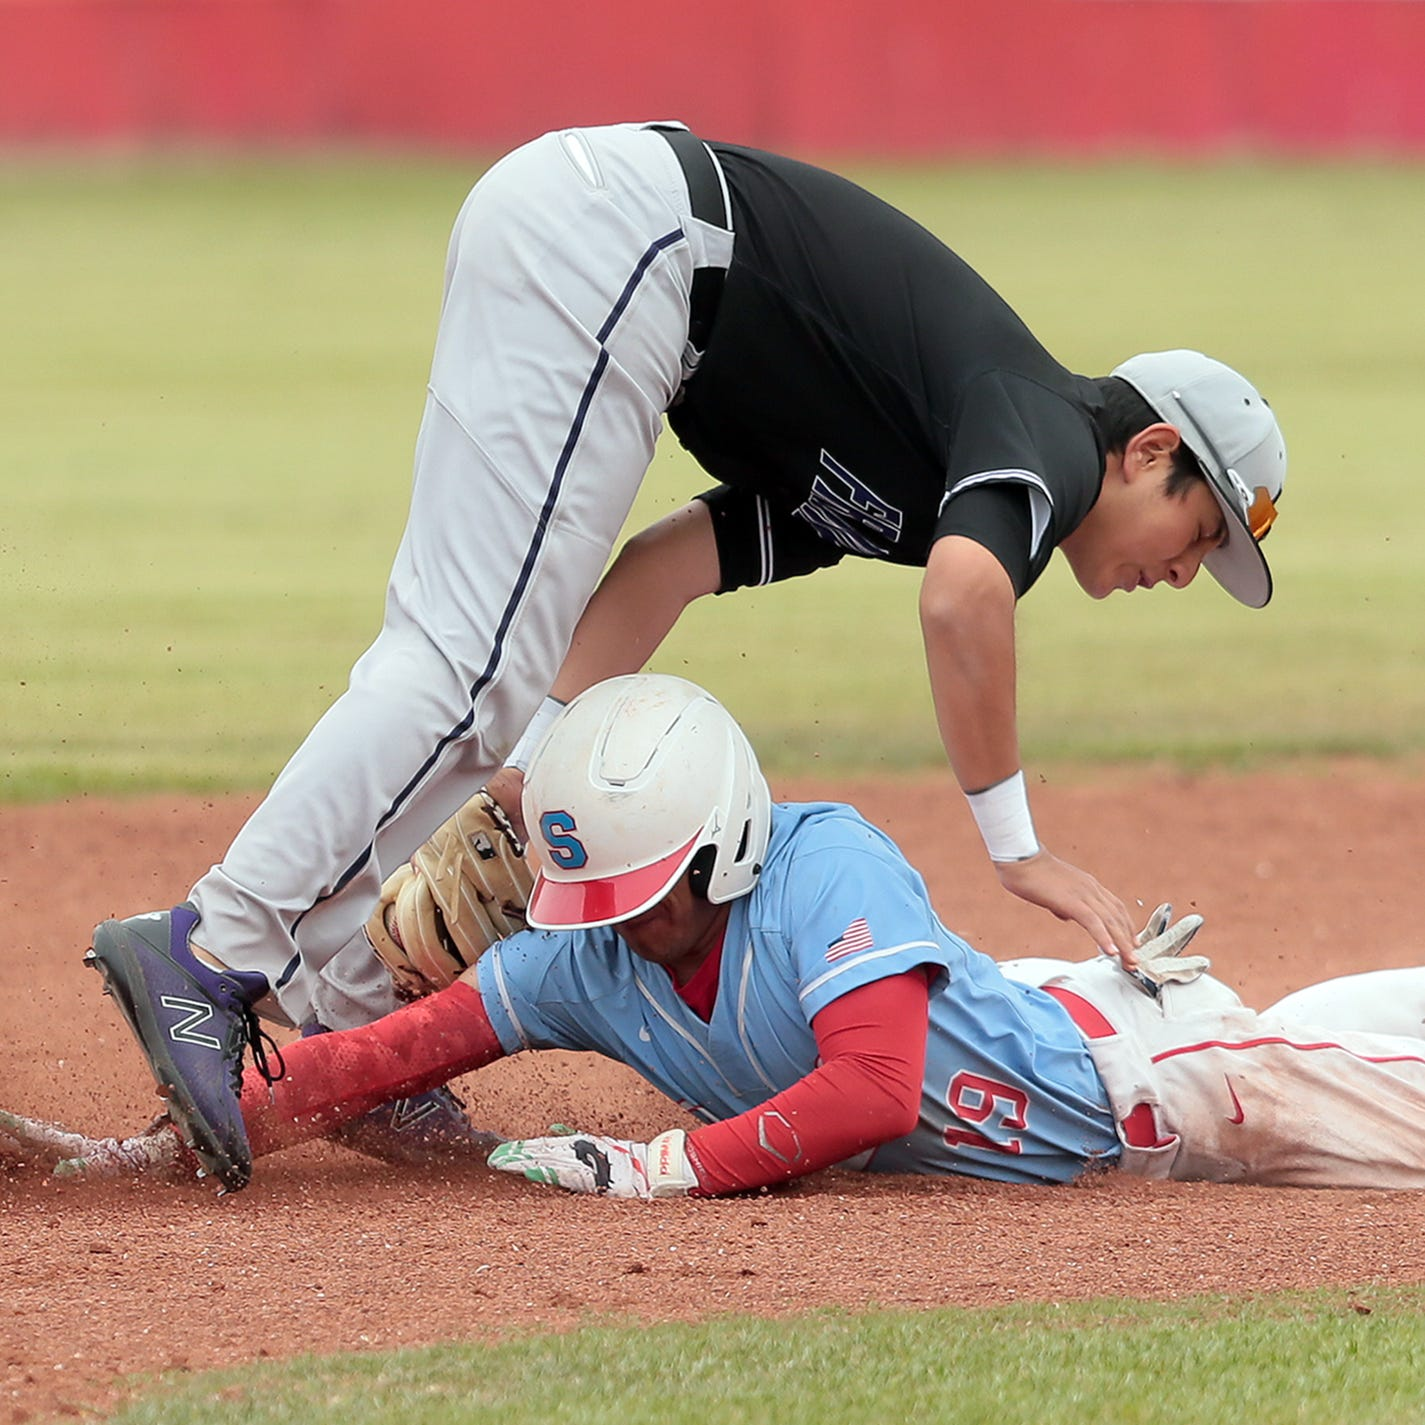 El Paso  high school baseball results for Tuesday, April 23